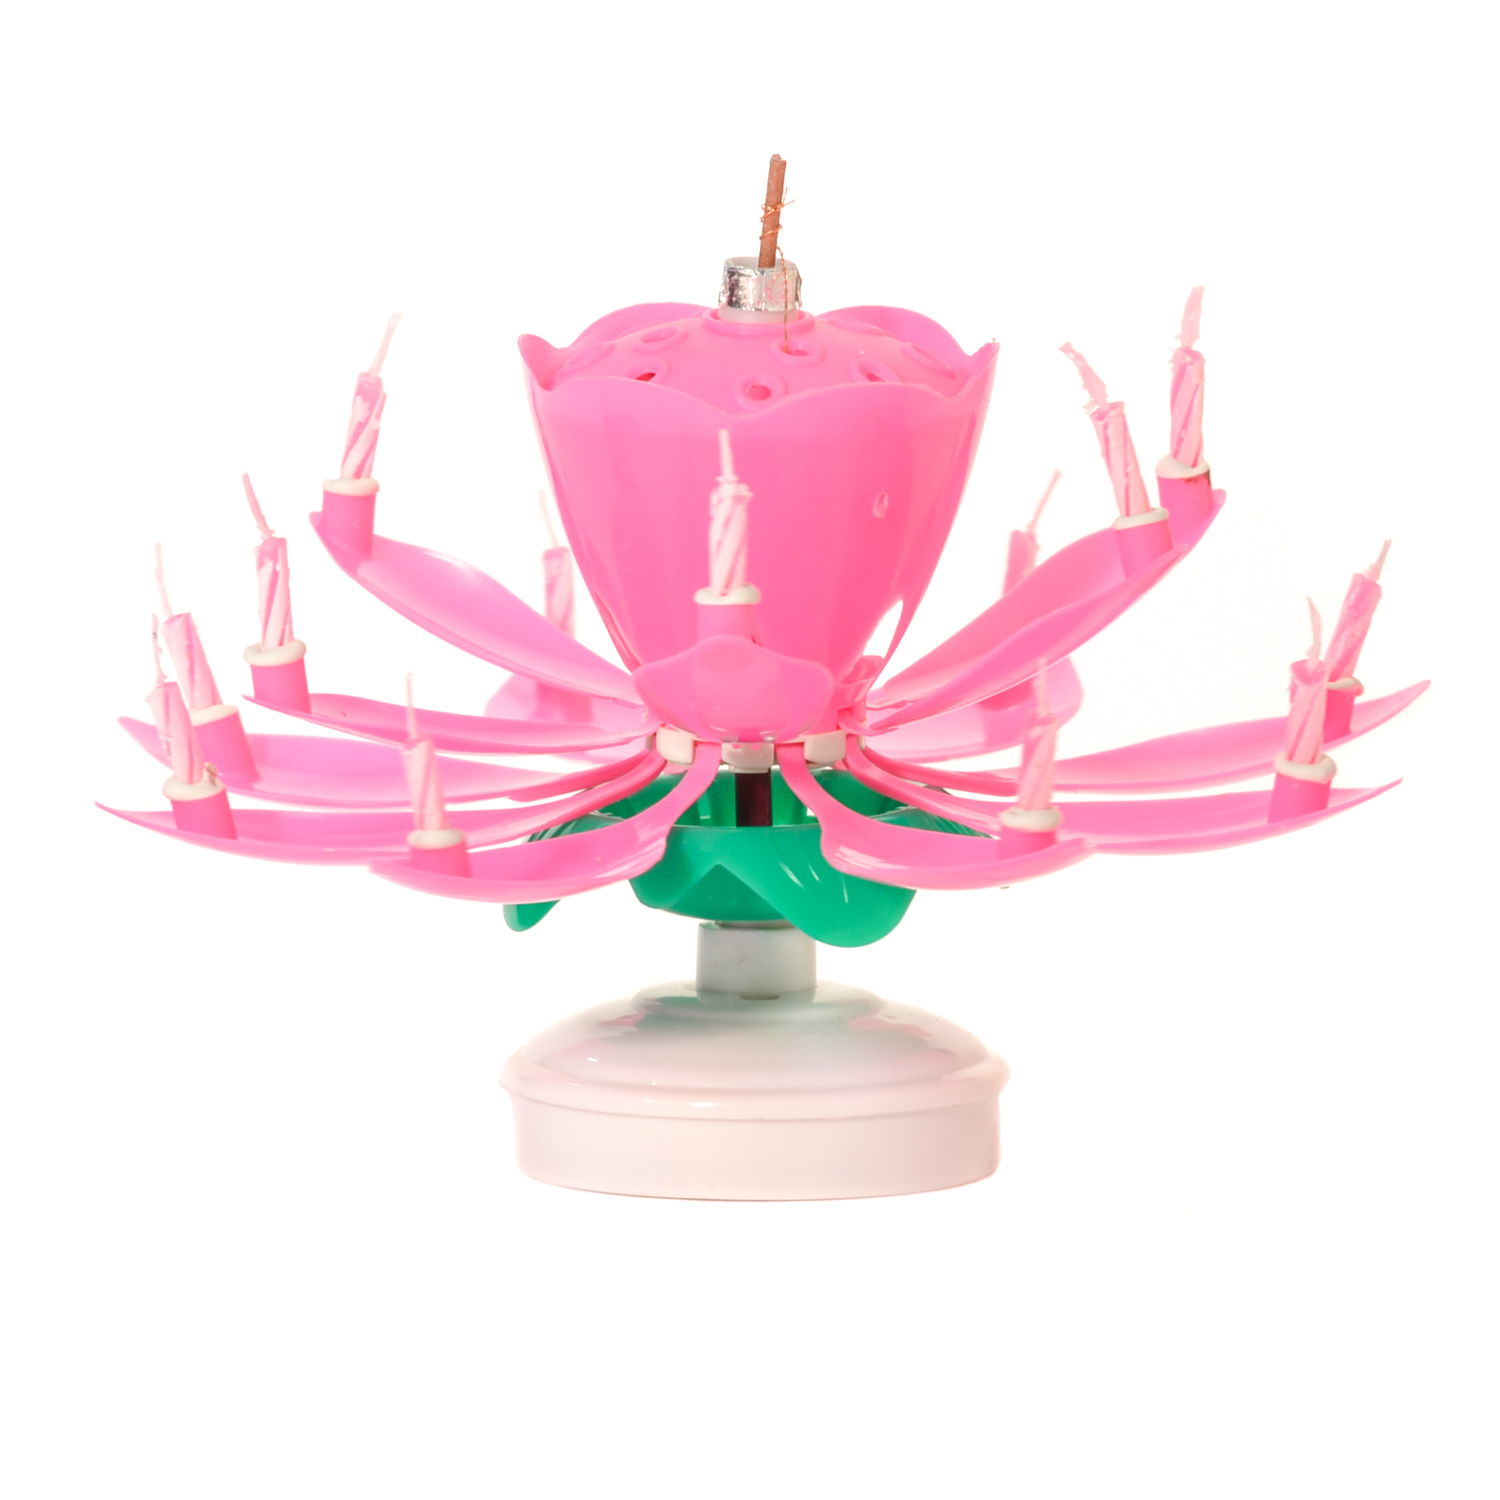 Pink Musical Flower Birthday Candles Lotus Flower Spinning Candles